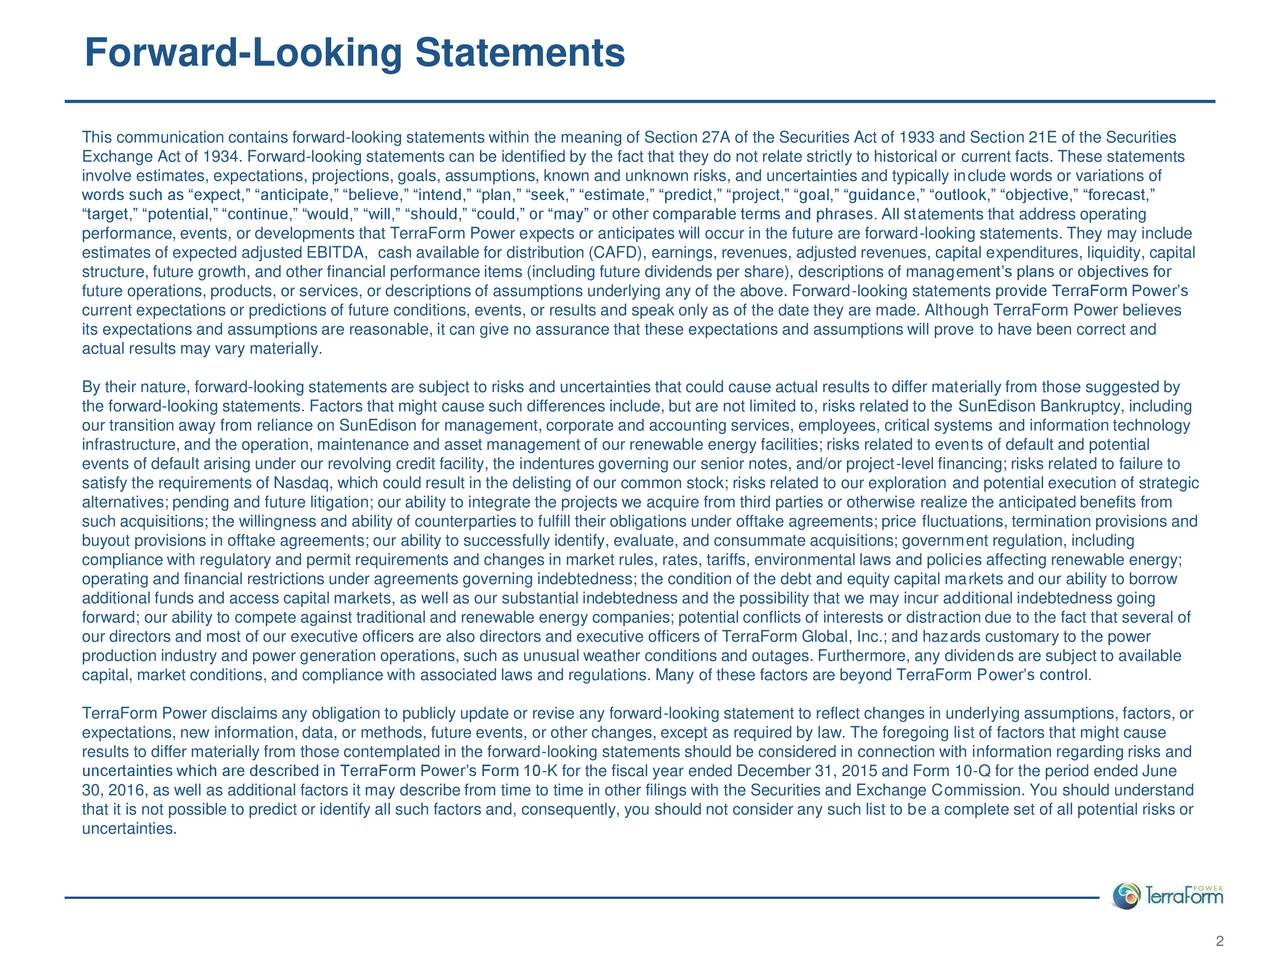 This communication contains forward-looking statements within the meaning of Section 27A of the Securities Act of 1933 and Section 21E of the Securities Exchange Act of 1934. Forward-looking statements can be identified by the fact that they do not relate strictly to historical or current facts. These statements involve estimates, expectations, projections, goals, assumptions, known and unknown risks, and uncertainties and typically include words or variations of words such as expect, anticipate, believe, intend, plan, seek, estimate, predict, project, goal, guidance, outlook, objective, forecast, target, potential, continue, would, will, should, could, or may or other comparable terms and phrases. All statements that address operating performance, events, or developments that TerraForm Power expects or anticipates will occur in the future are forward-looking statements. They may include estimates of expected adjusted EBITDA, cash available for distribution (CAFD), earnings, revenues, adjusted revenues, capital expenditures, liquidity, capital structure, future growth, and other financial performance items (including future dividends per share), descriptions of managements plans or objectives for future operations, products, or services, or descriptions of assumptions underlying any of the above. Forward-looking statements provide TerraForm Powers current expectations or predictions of future conditions, events, or results and speak only as of the date they are made. Although TerraForm Power believes its expectations and assumptions are reasonable, it can give no assurance that these expectations and assumptions will prove to have been correct and actual results may vary materially. By their nature, forward-looking statements are subject to risks and uncertainties that could cause actual results to differ materially from those suggested by the forward-looking statements. Factors that might cause such differences include, but are not limited to, risks related to the SunEdison Bankruptcy, including our transition away from reliance on SunEdison for management, corporate and accounting services, employees, critical systems and information technology infrastructure, and the operation, maintenance and asset management of our renewable energy facilities; risks related to events of default and potential events of default arising under our revolving credit facility, the indentures governing our senior notes, and/or project-level financing; risks related to failure to satisfy the requirements of Nasdaq, which could result in the delisting of our common stock; risks related to our exploration and potential execution of strategic alternatives; pending and future litigation; our ability to integrate the projects we acquire from third parties or otherwise realize the anticipated benefits from such acquisitions; the willingness and ability of counterparties to fulfill their obligations under offtake agreements; price fluctuations, termination provisions and buyout provisions in offtake agreements; our ability to successfully identify, evaluate, and consummate acquisitions; government regulation, including compliance with regulatory and permit requirements and changes in market rules, rates, tariffs, environmental laws and policies affecting renewable energy; operating and financial restrictions under agreements governing indebtedness; the condition of the debt and equity capital markets and our ability to borrow additional funds and access capital markets, as well as our substantial indebtedness and the possibility that we may incur additional indebtedness going forward; our ability to compete against traditional and renewable energy companies; potential conflicts of interests or distraction due to the fact that several of our directors and most of our executive officers are also directors and executive officers of TerraForm Global, Inc.; and hazards customary to the power production industry and power generation operations, such as unusual weather conditions and outages. Furthermore, any dividends are subject to available capital, market conditions, and compliance with associated laws and regulations. Many of these factors are beyond TerraForm Powers control. TerraForm Power disclaims any obligation to publicly update or revise any forward-looking statement to reflect changes in underlying assumptions, factors, or expectations, new information, data, or methods, future events, or other changes, except as required by law. The foregoing list of factors that might cause results to differ materially from those contemplated in the forward-looking statements should be considered in connection with information regarding risks and uncertainties which are described in TerraForm Powers Form 10-K for the fiscal year ended December 31, 2015 and Form 10-Q for the period ended June 30, 2016, as well as additional factors it may describe from time to time in other filings with the Securities and Exchange Commission. You should understand that it is not possible to predict or identify all such factors and, consequently, you should not consider any such list to be a complete set of all potential risks or uncertainties. 2